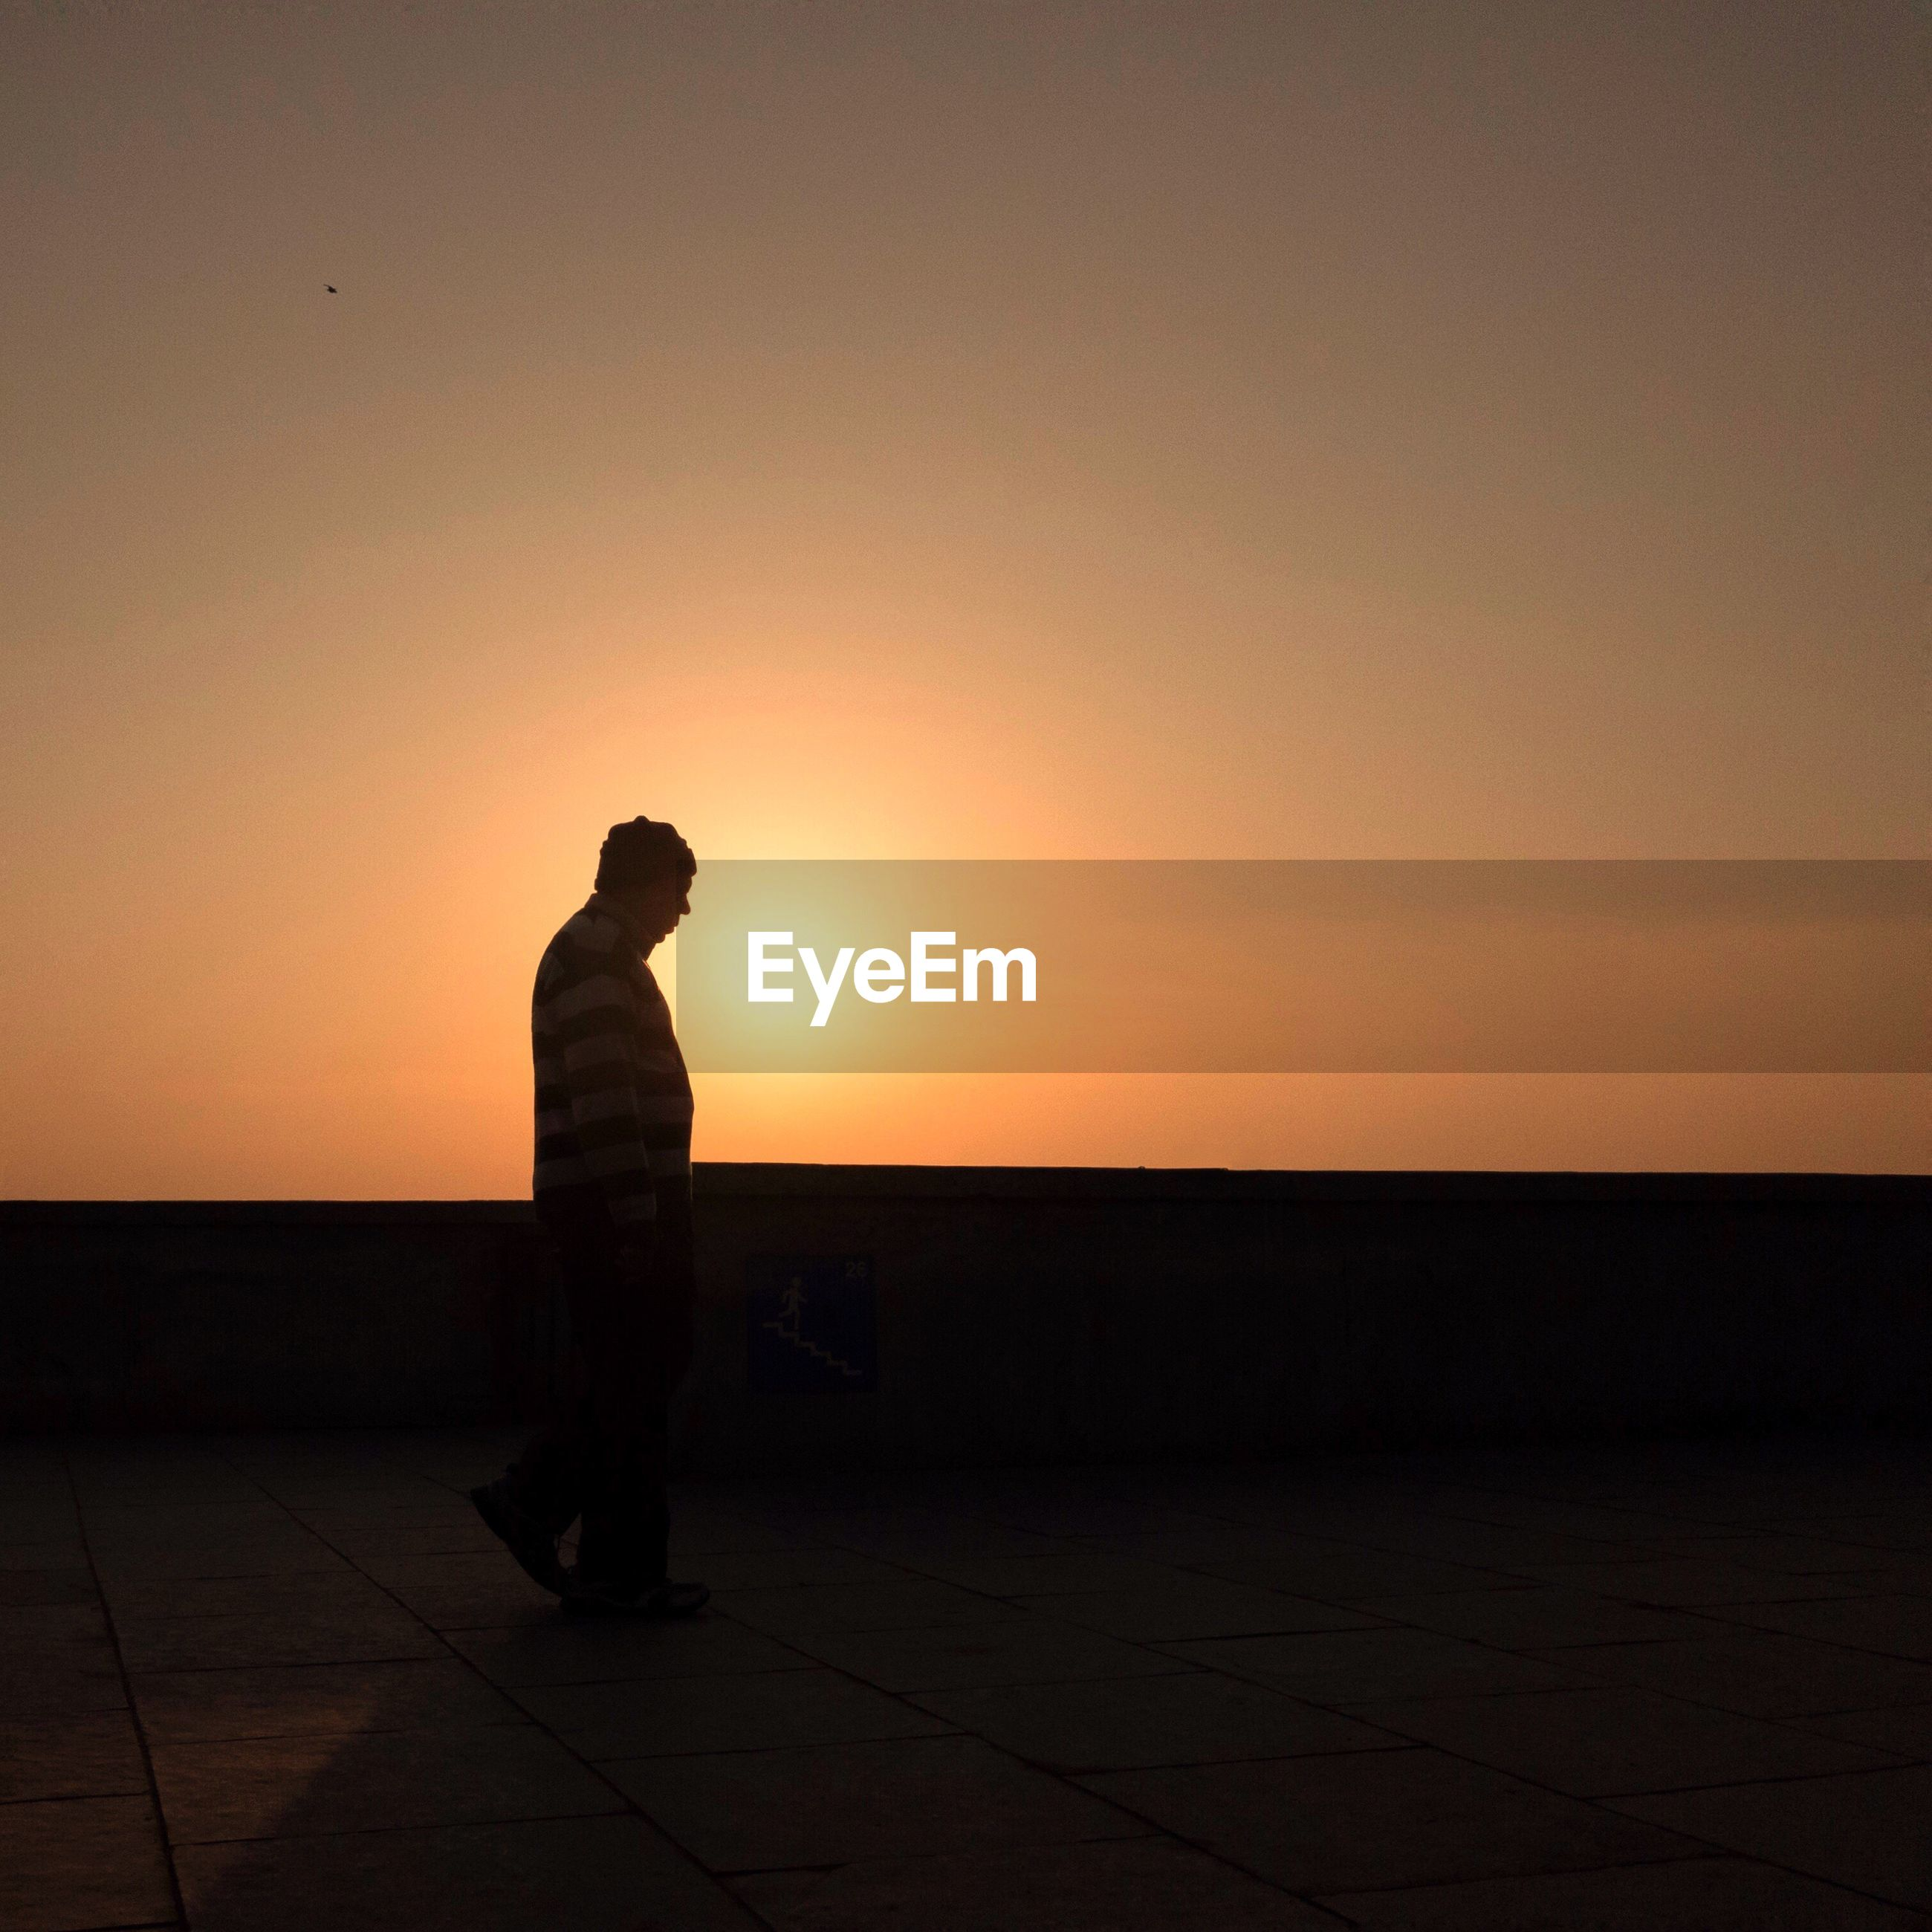 Side view of silhouette man walking on promenade against clear sky during sunset